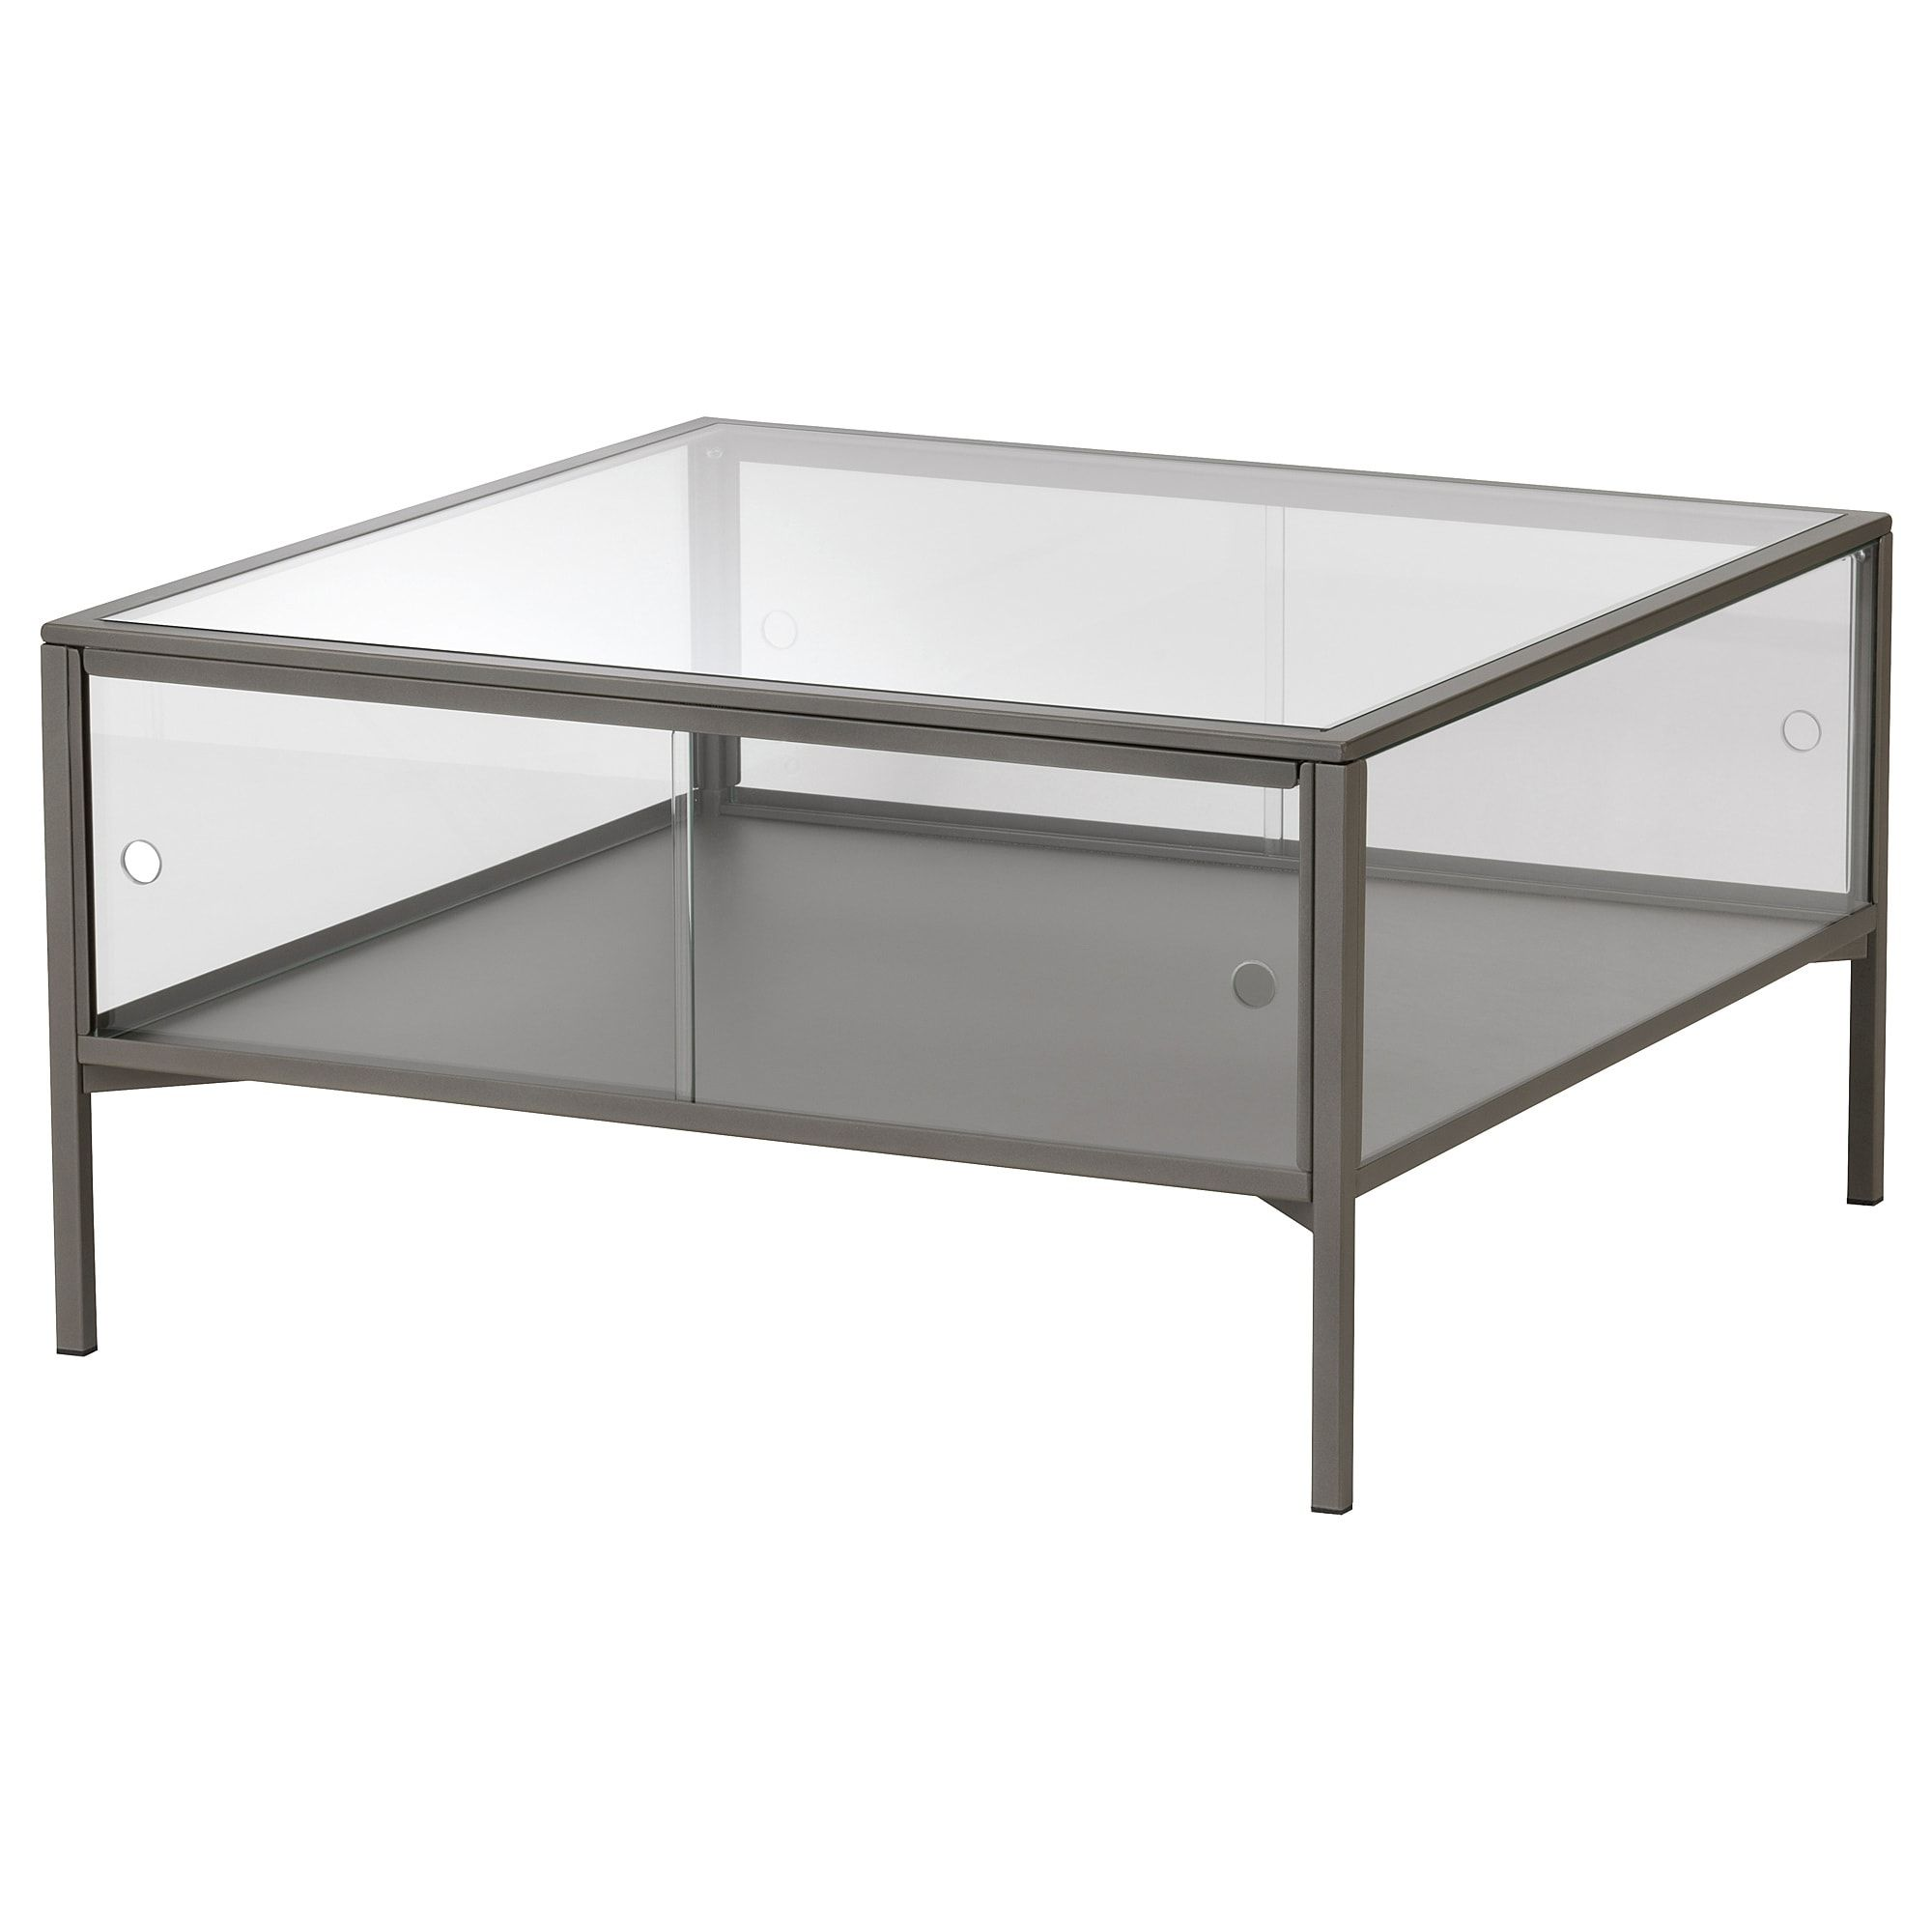 Sammanhang Coffee Table Gray Glass In 2019 Coffee Table